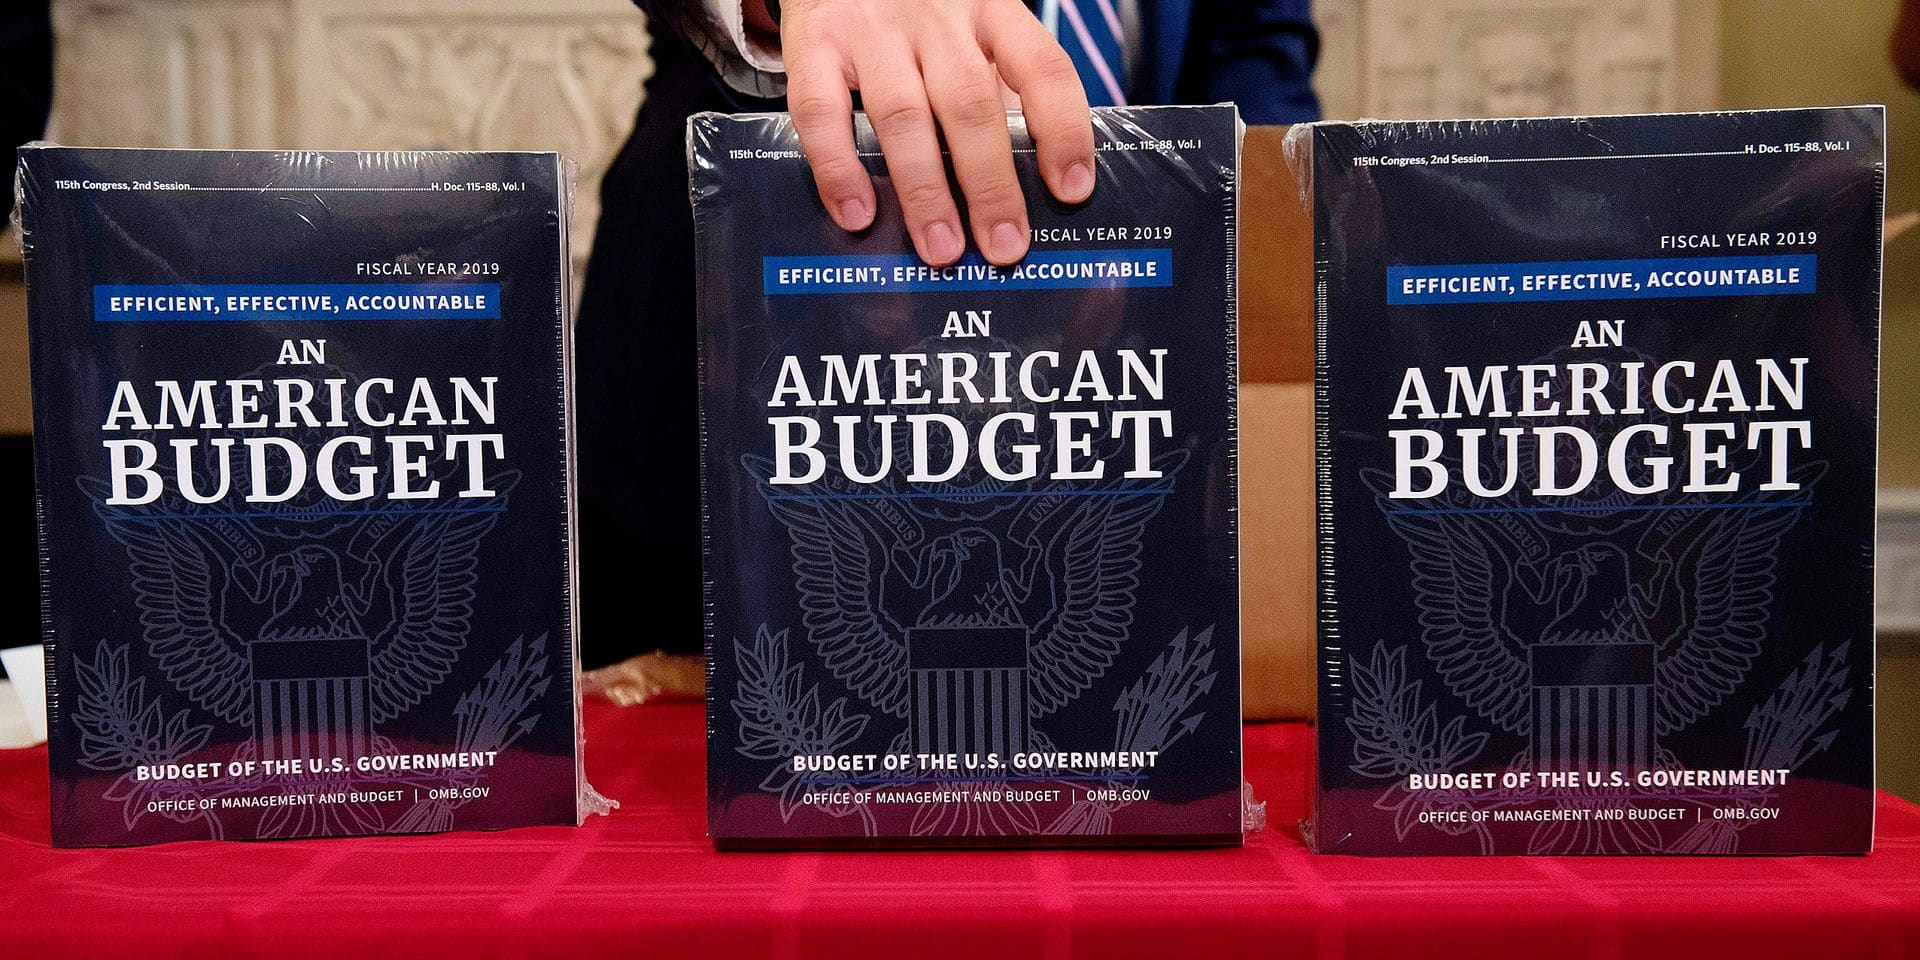 A Congressional staff member delivers copies of US President Donald Trump's Fiscal Year 2019 Government Budget at the House Budget Committee on Capitol Hill in Washington, DC, February 12, 2018. / AFP PHOTO / SAUL LOEB